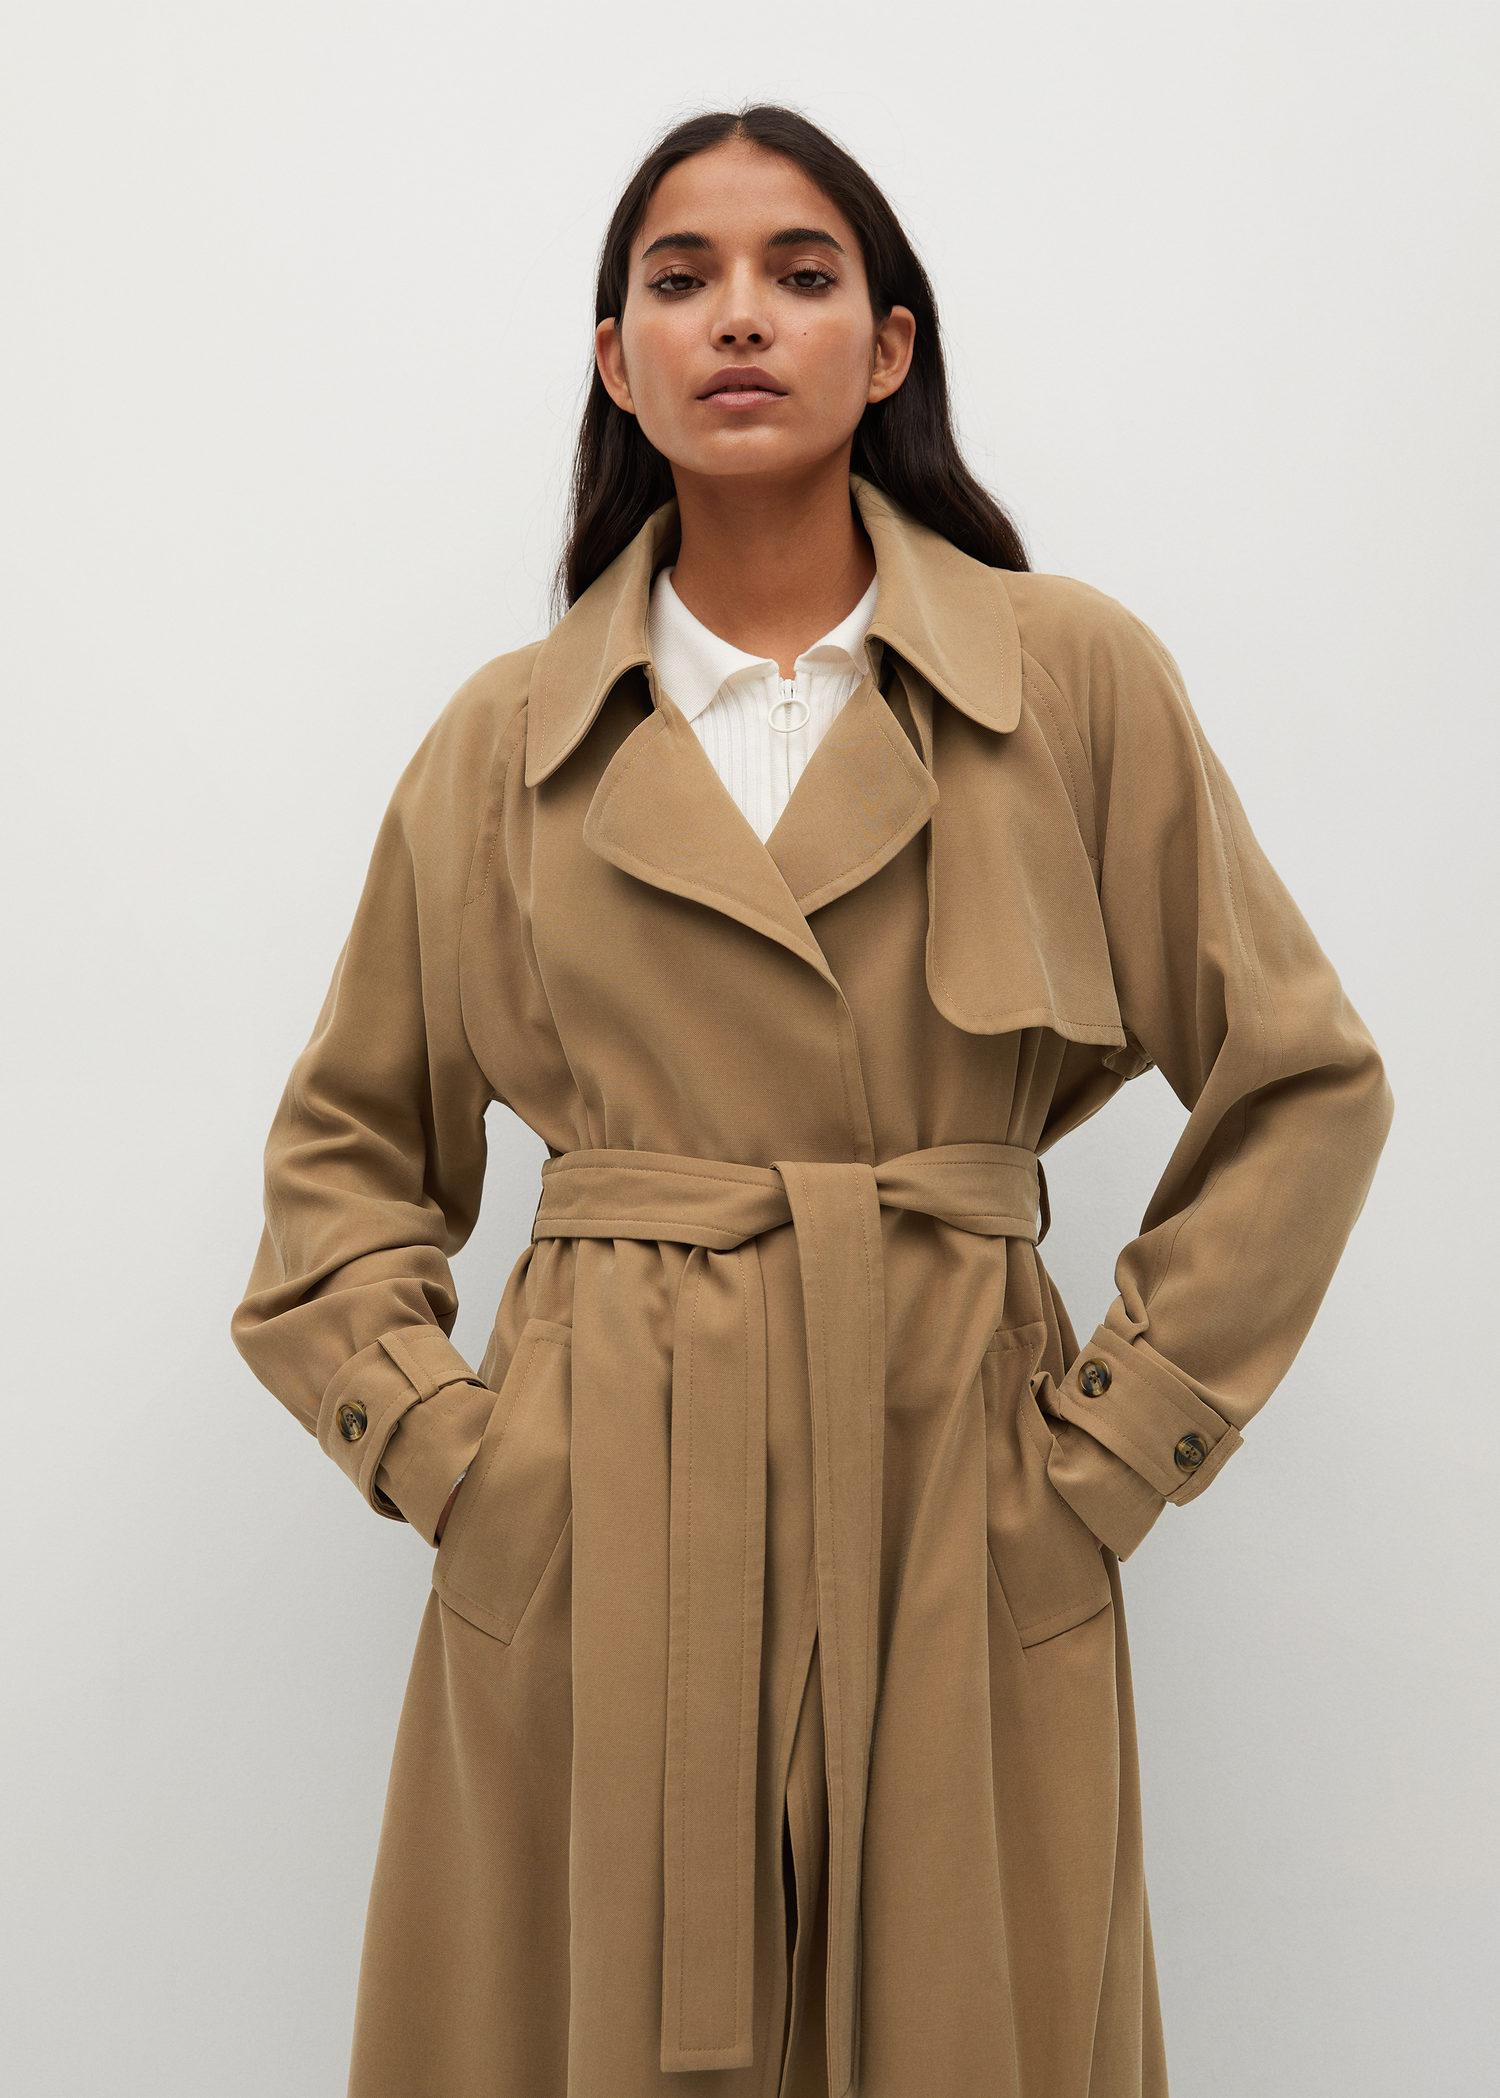 Long flowy trench